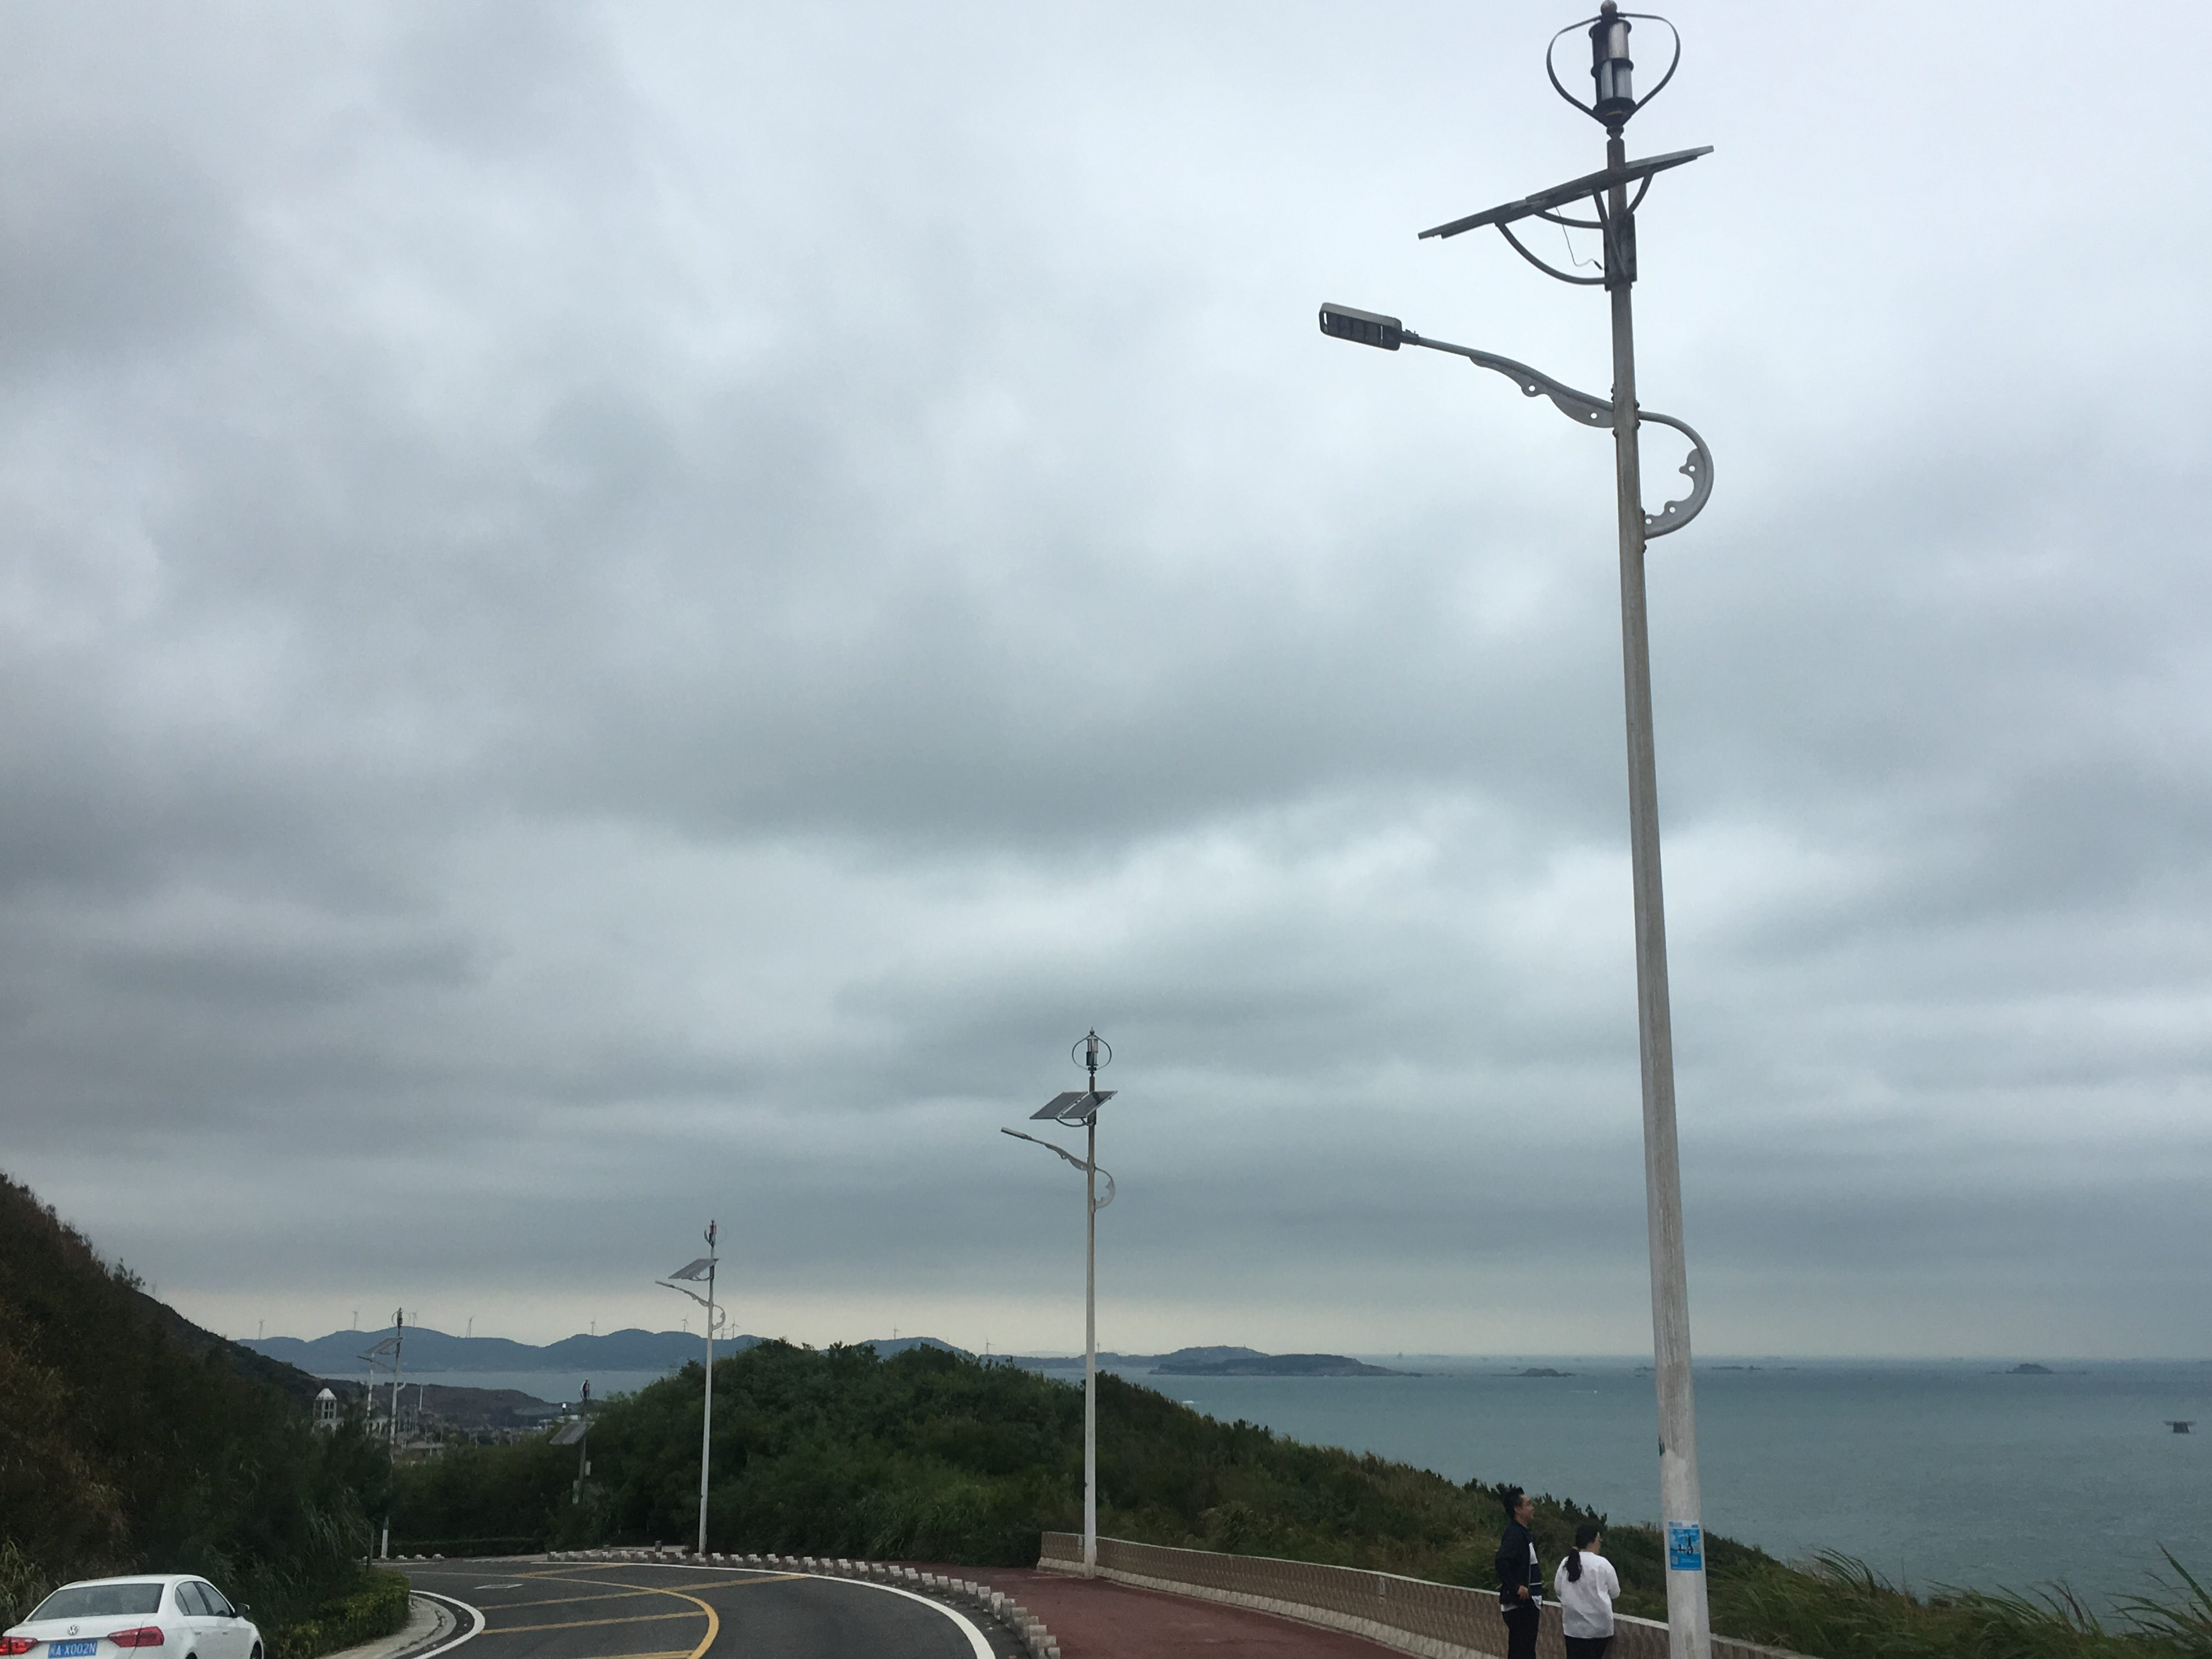 Not just solar but also wind twirlers to generate power for the lights